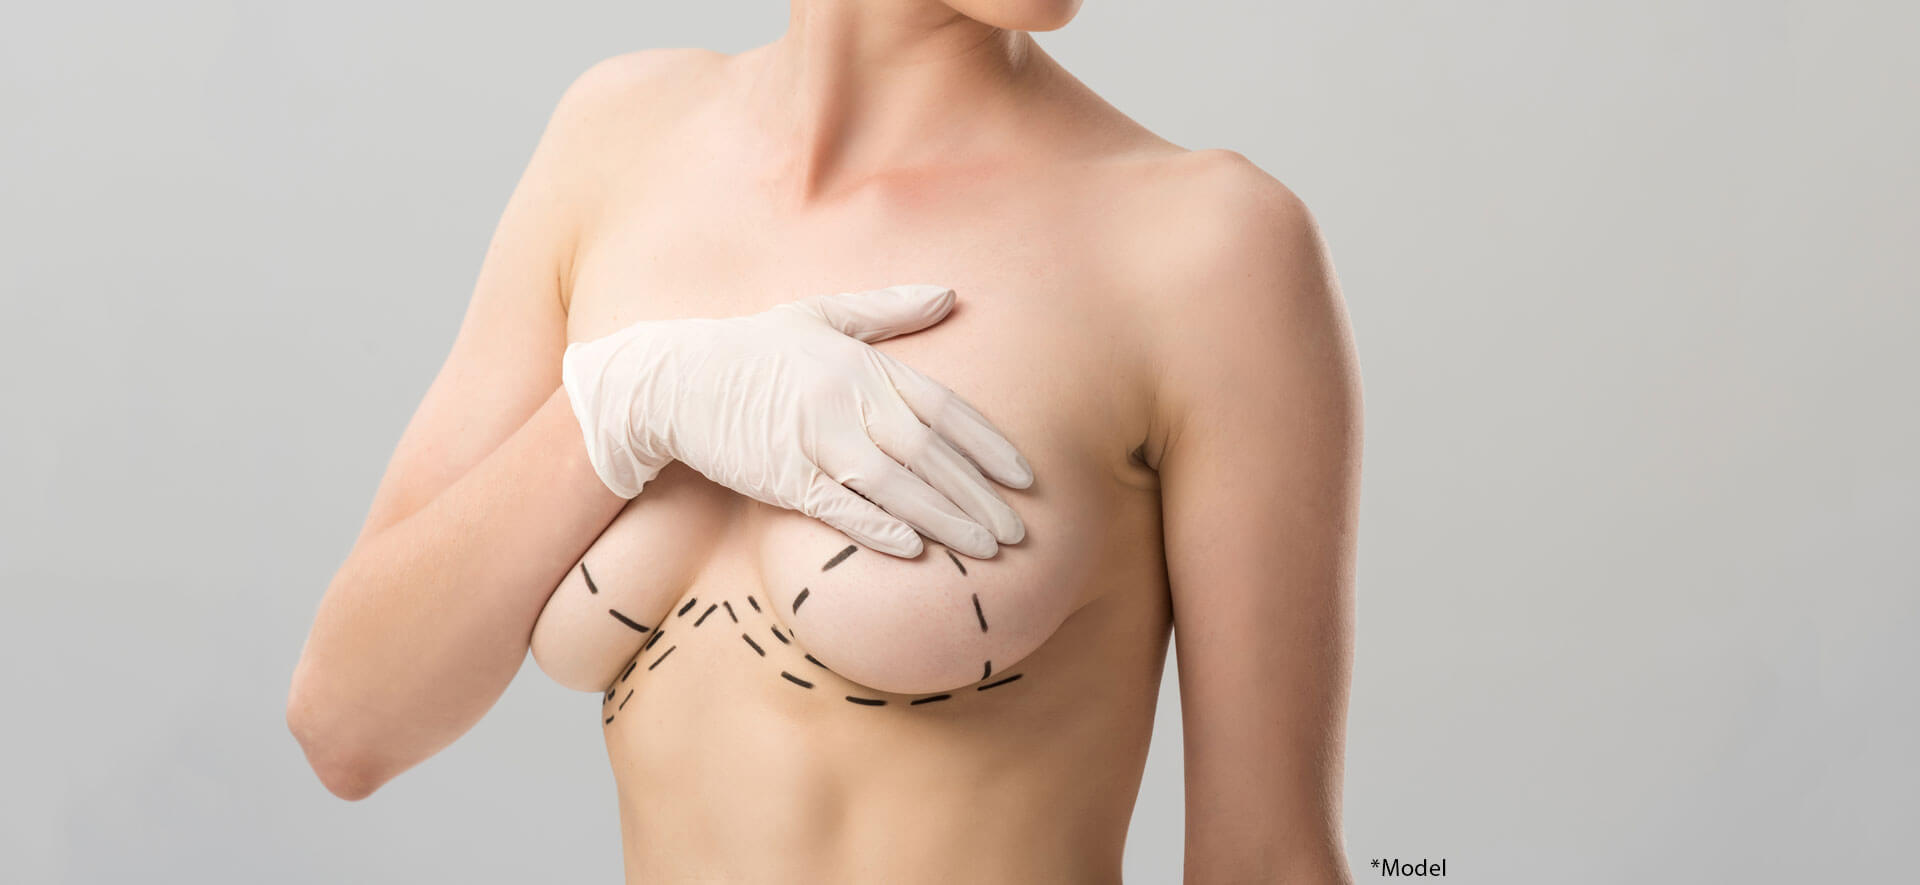 Cropped view of woman in latex glove with marks on breast